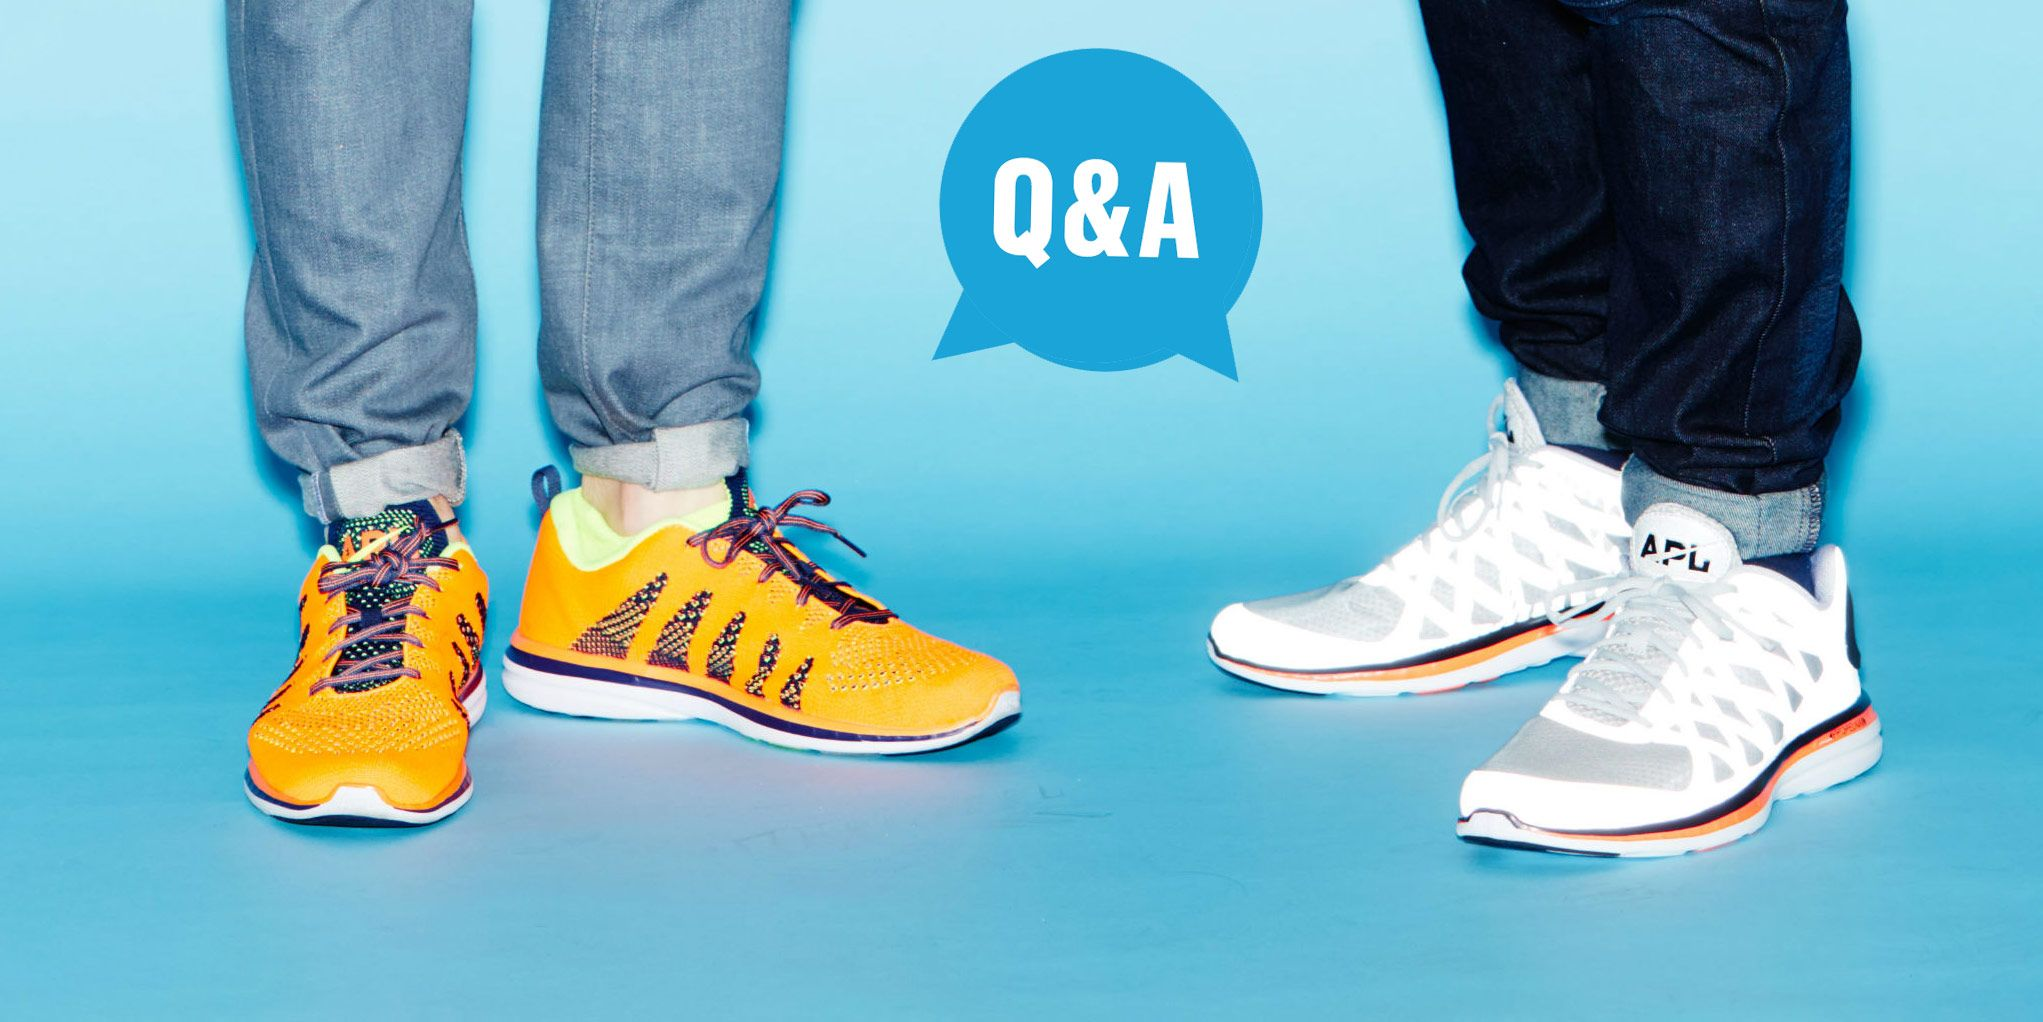 763a7e9c46f APL Sneakers Interview - Adam and Ryan Goldston Talk Athletic ...